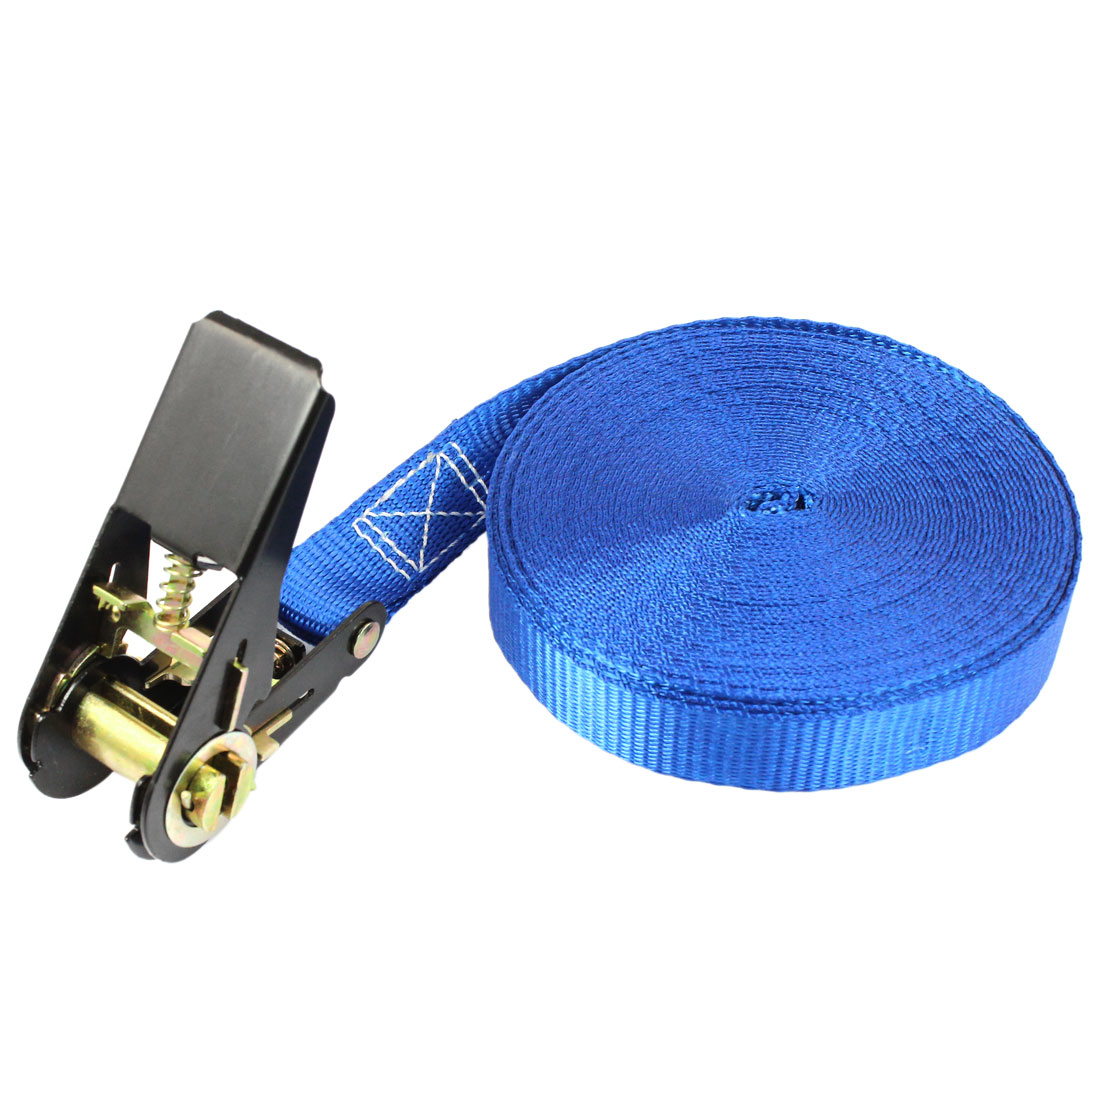 Travel Cargo Binding Band Black Ratchet Tie Down Strap 10M 33ft Blue